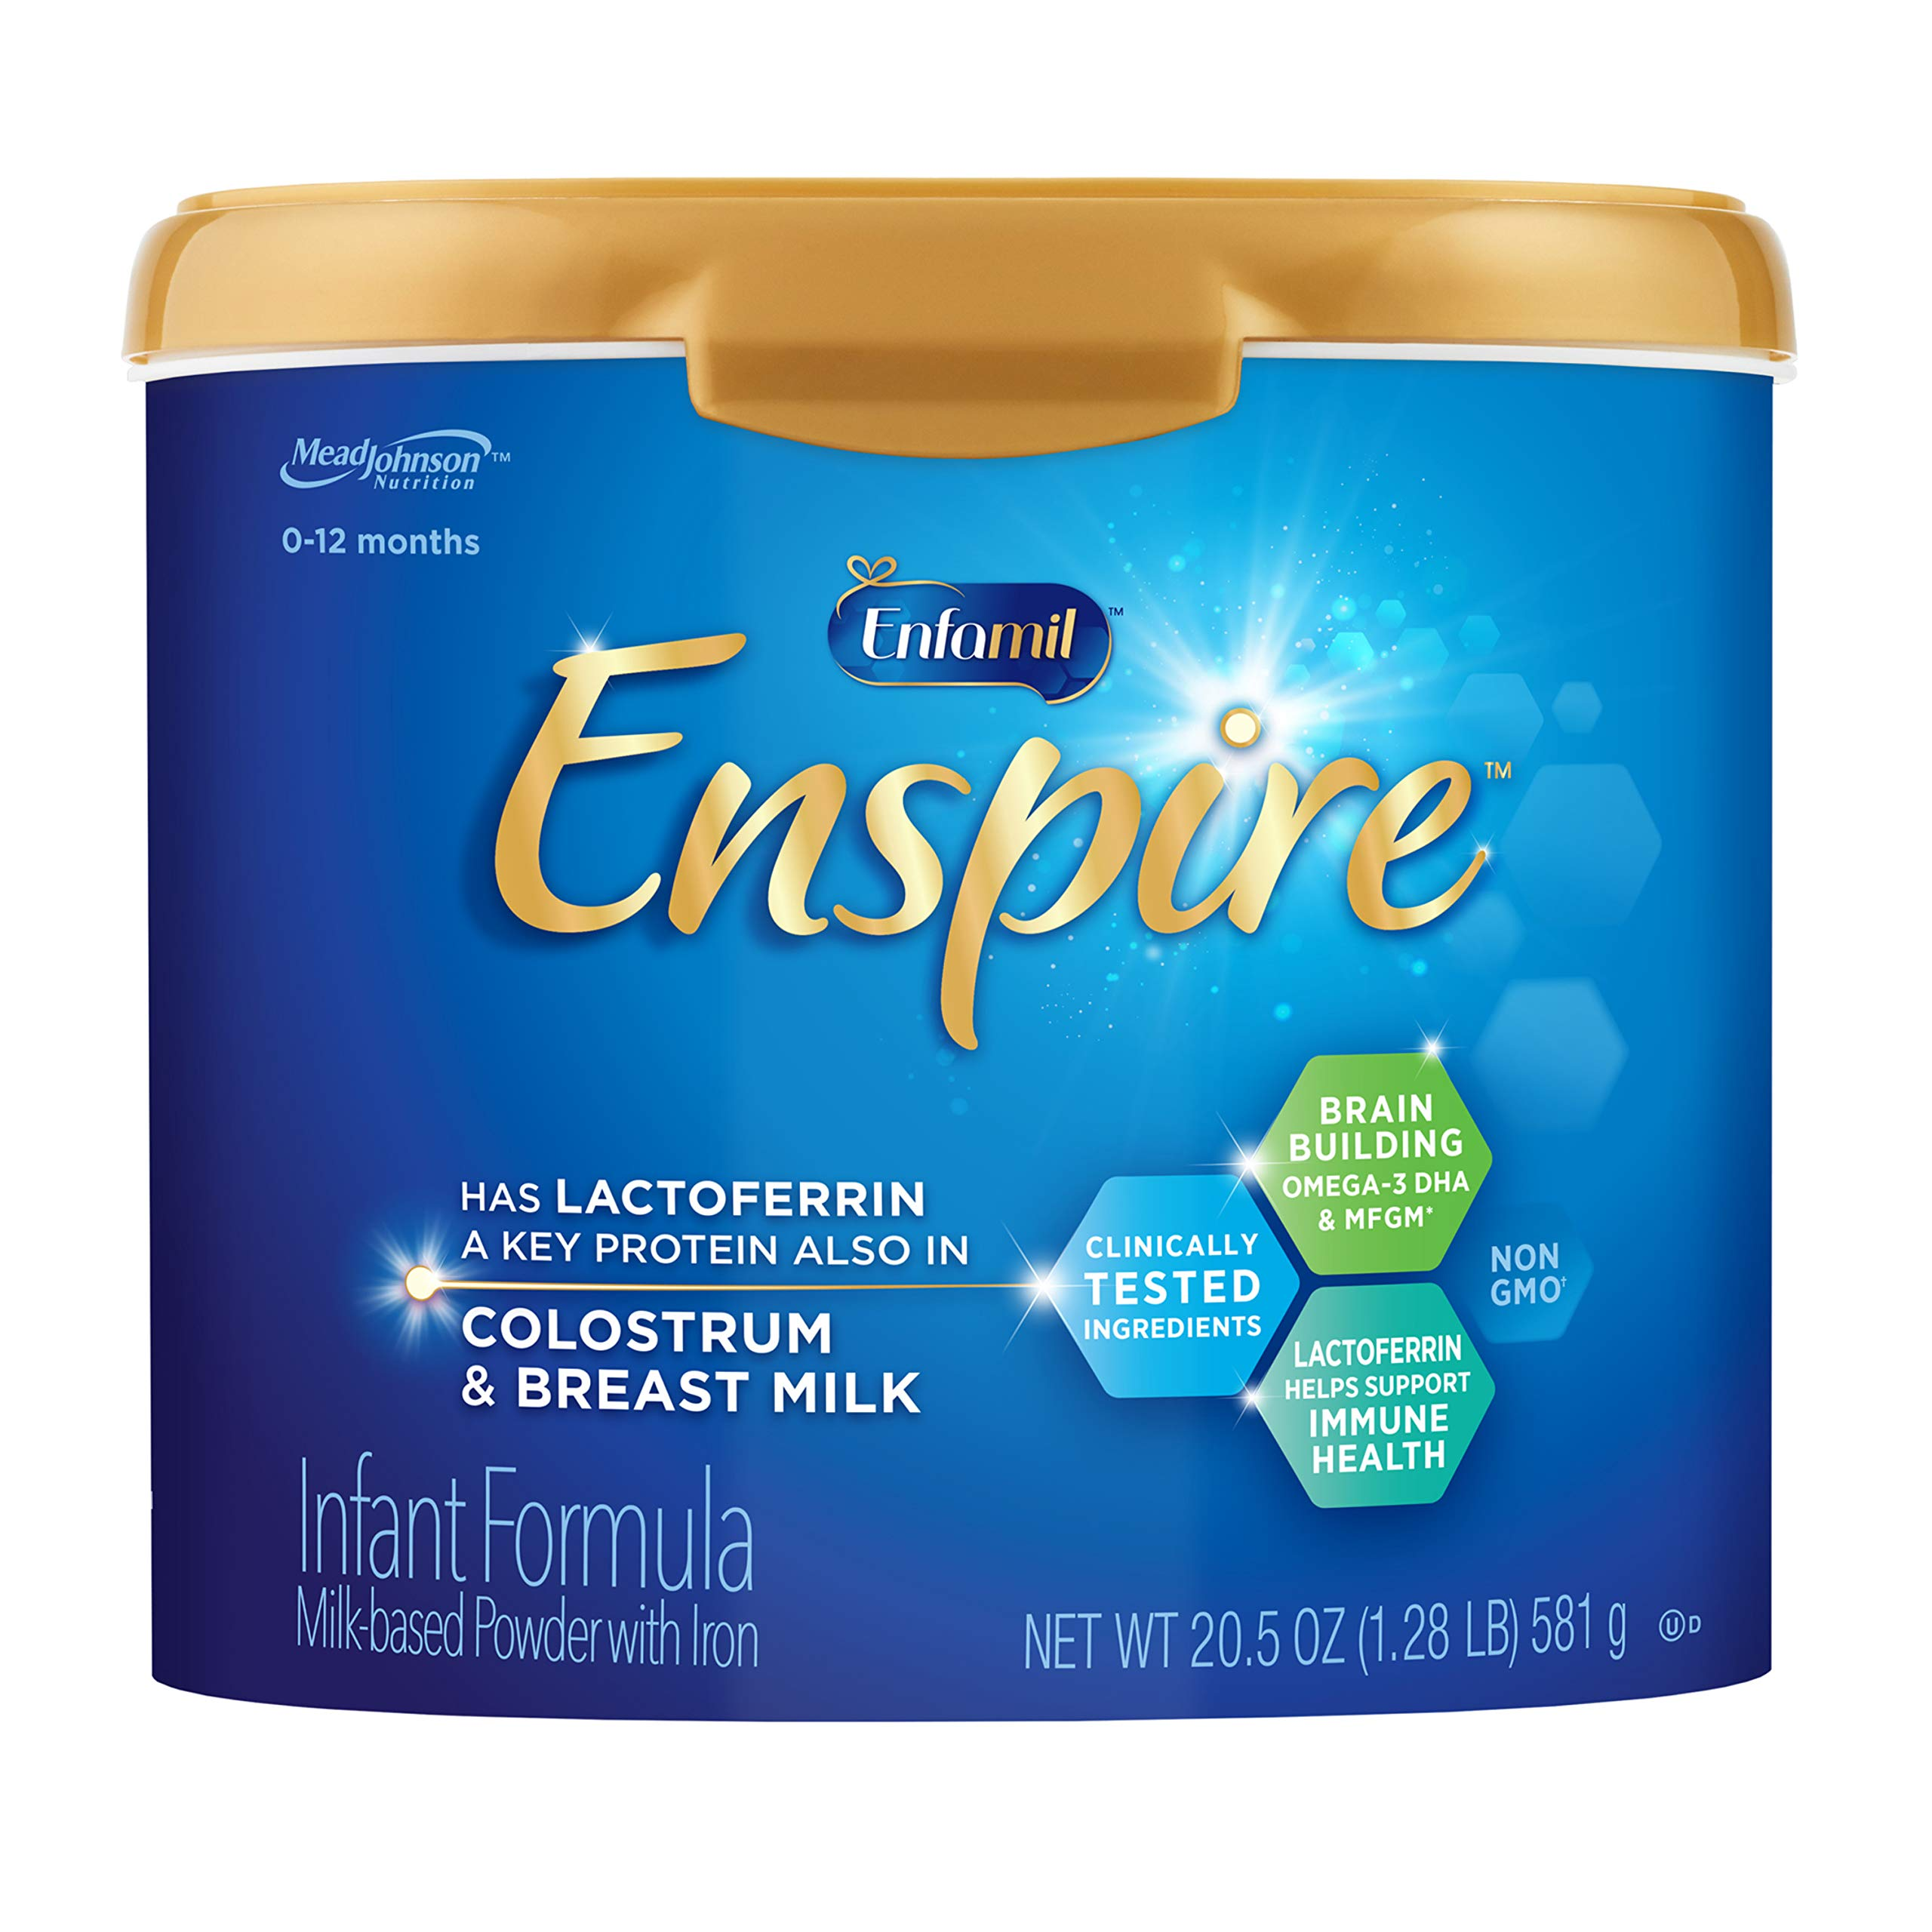 Enfamil Enspire Infant Formula with Immune-Supporting Lactoferrin, Brain Building DHA, 5 Nutrient Benefits in 1 Formula, Our Closest Formula to Breast Milk, Non-GMO, Reusable Tub, 20.5 Oz